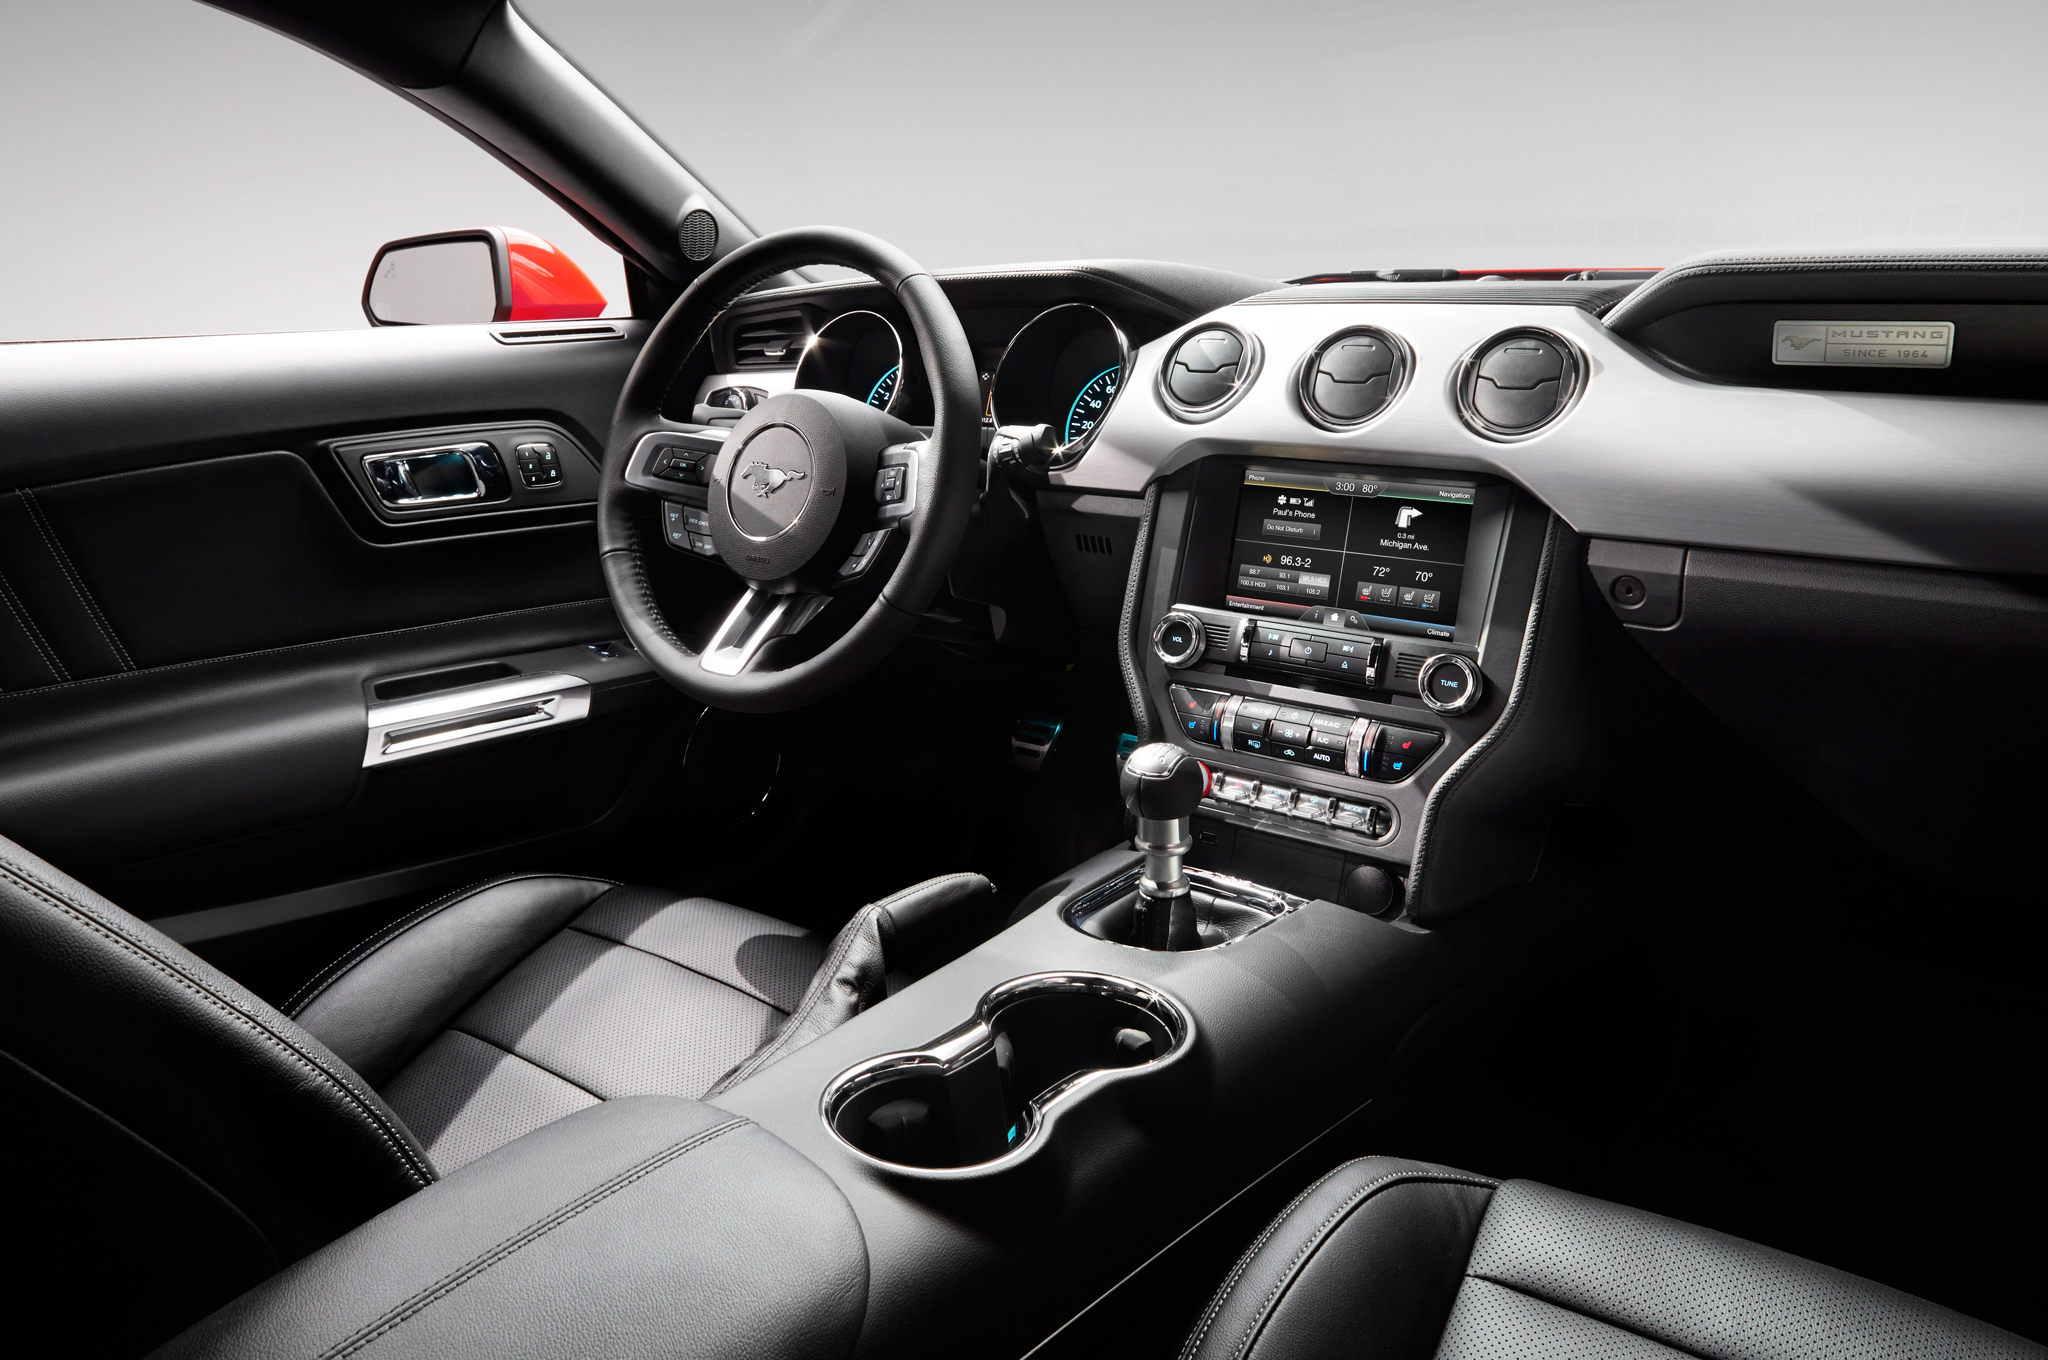 2015 Ford Mustang GT Front Interior